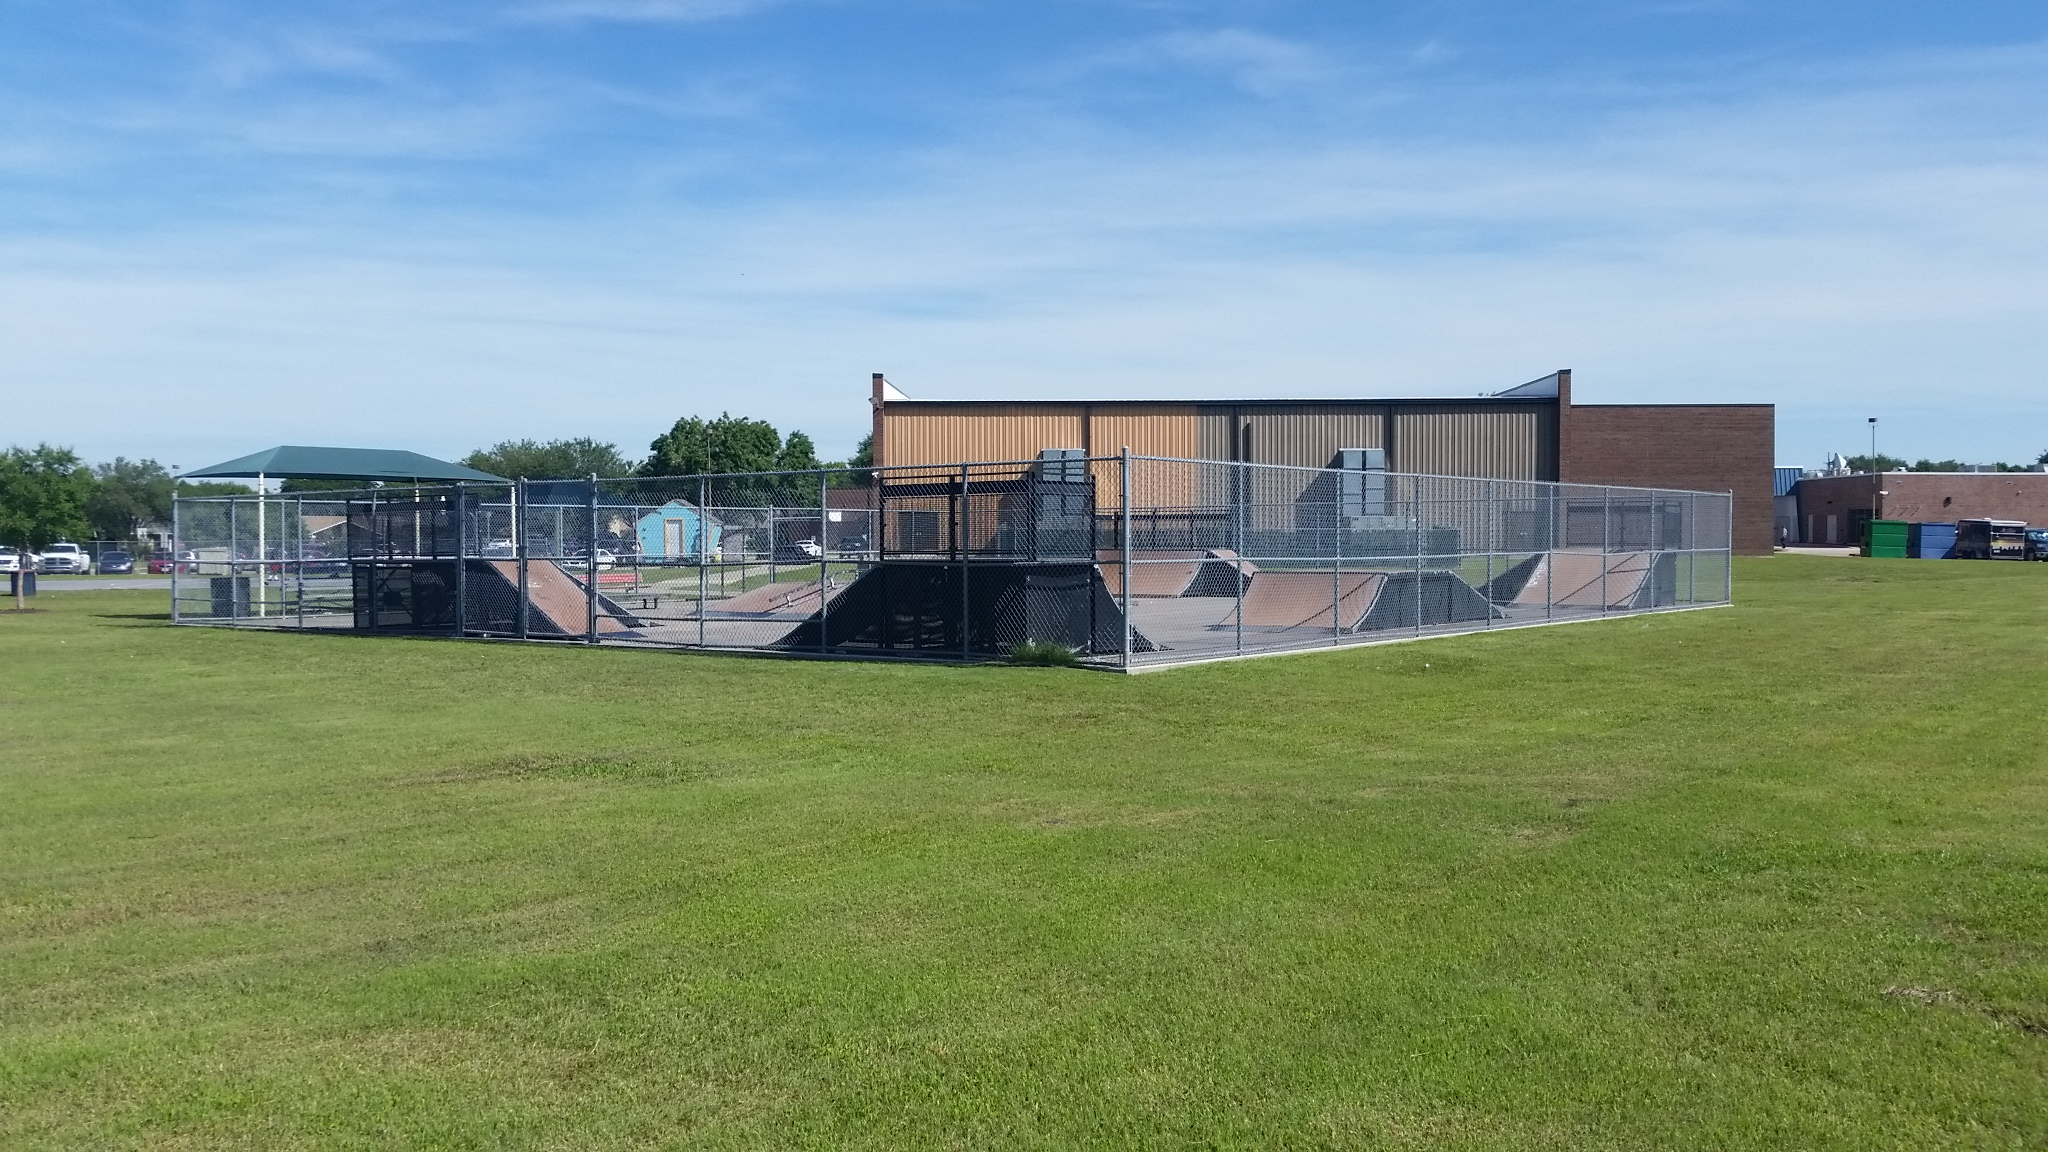 The chainlink fence makes for an uninviting space, and the modular ramps have a limited lifespan